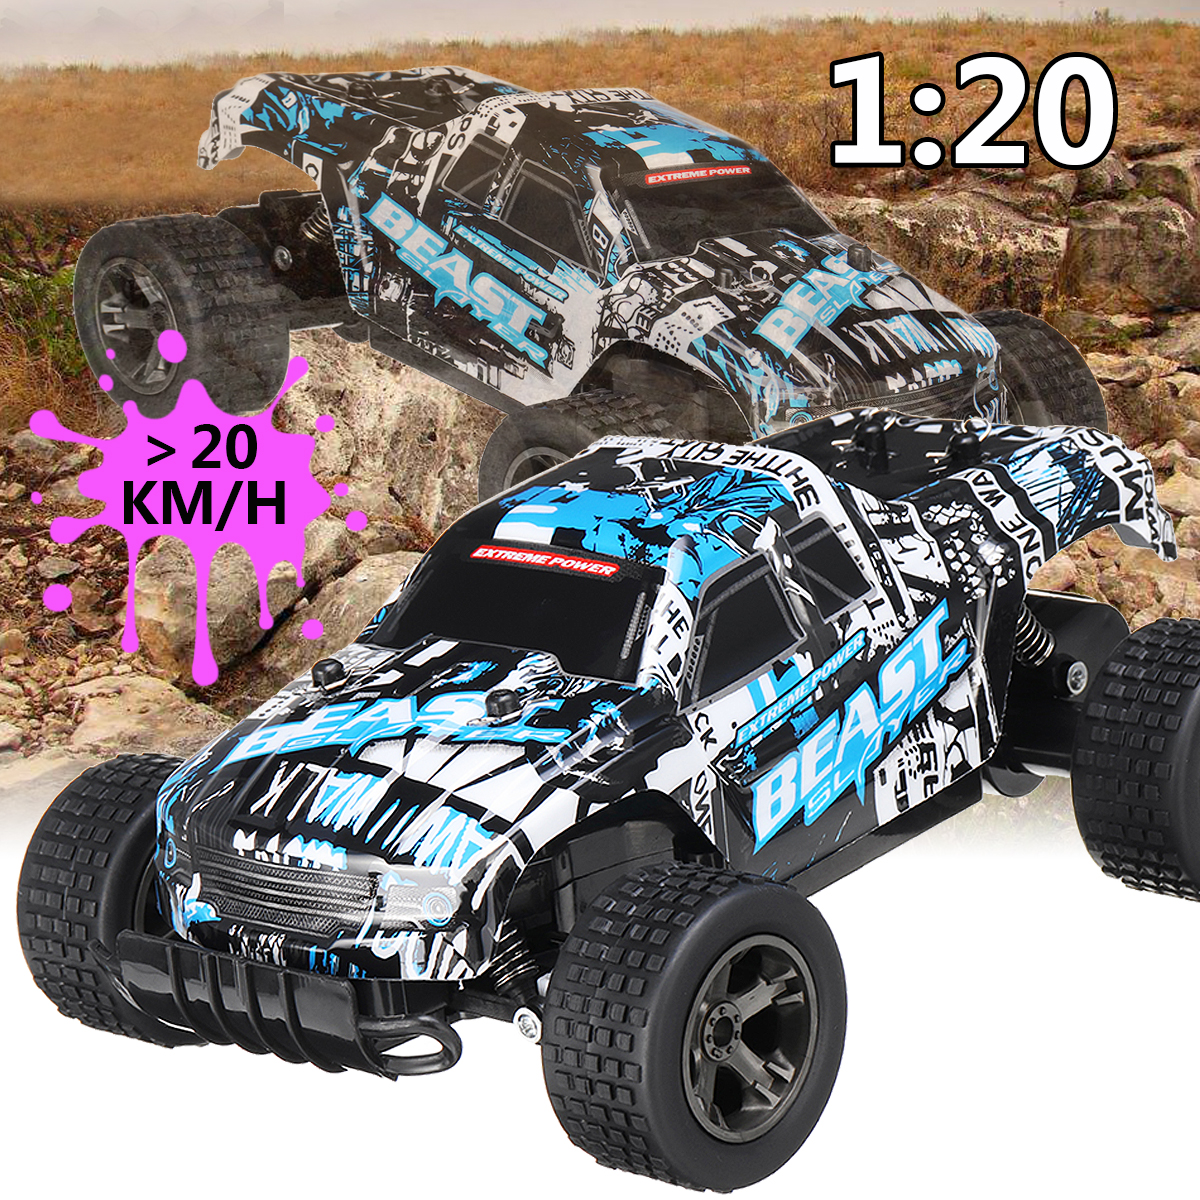 RC Car 48KM/H 2 4ghz 1:20 4WD Remote Control High Speed Truck Electric  Truck OffRoad Vehicle 4x4 Driving Car Vehicle Toy